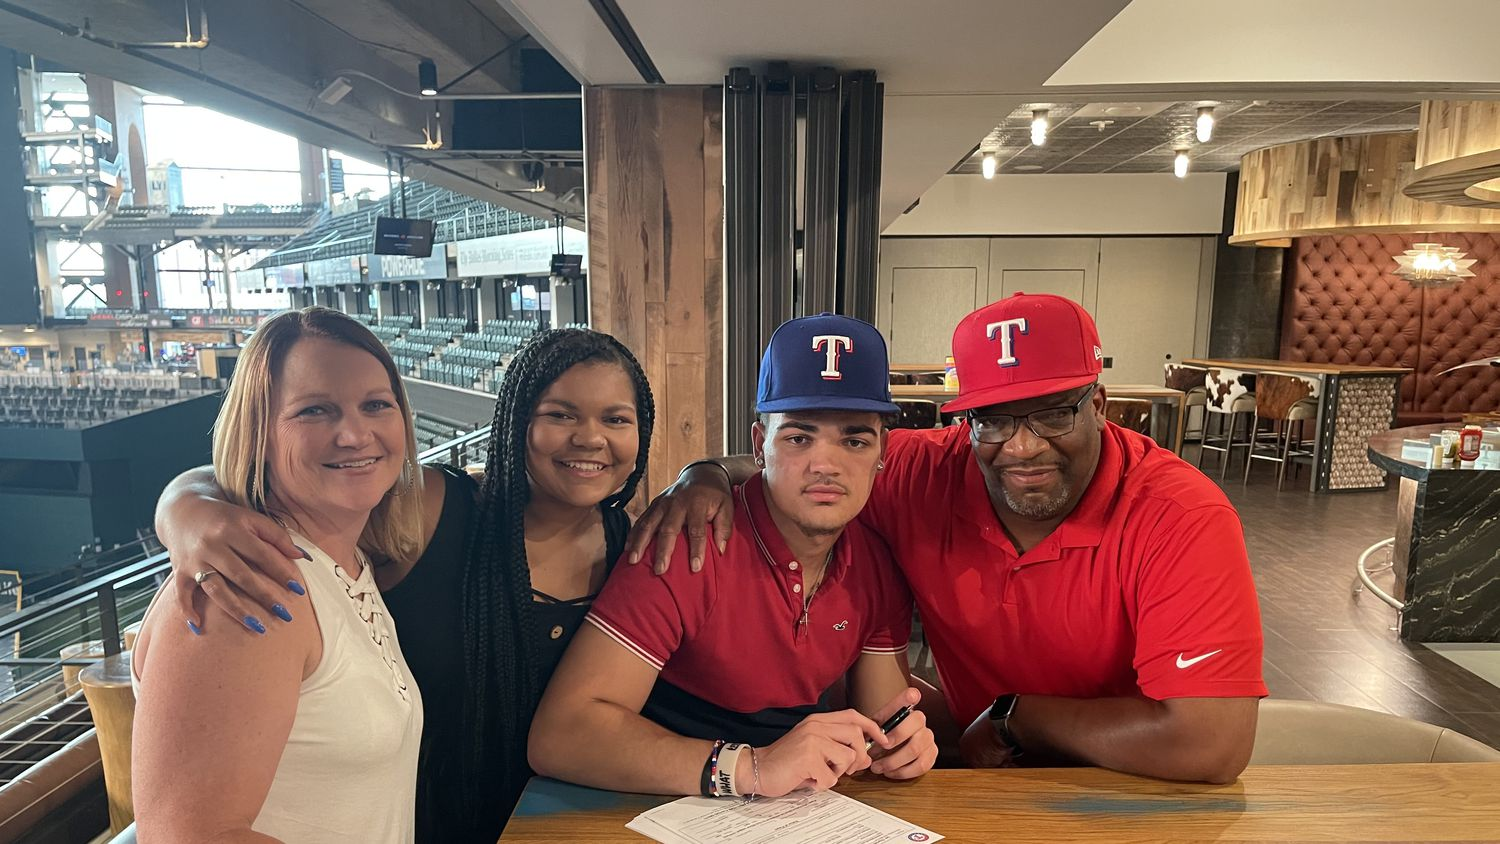 The Texas Rangers drafted Ian Moller in the fourth round of the 2021 MLB draft. From left to right: Mother Shannon Moller, sister Alexis Moller, Ian Moller and father Steven Moller. (Courtesy/Steven Moller)